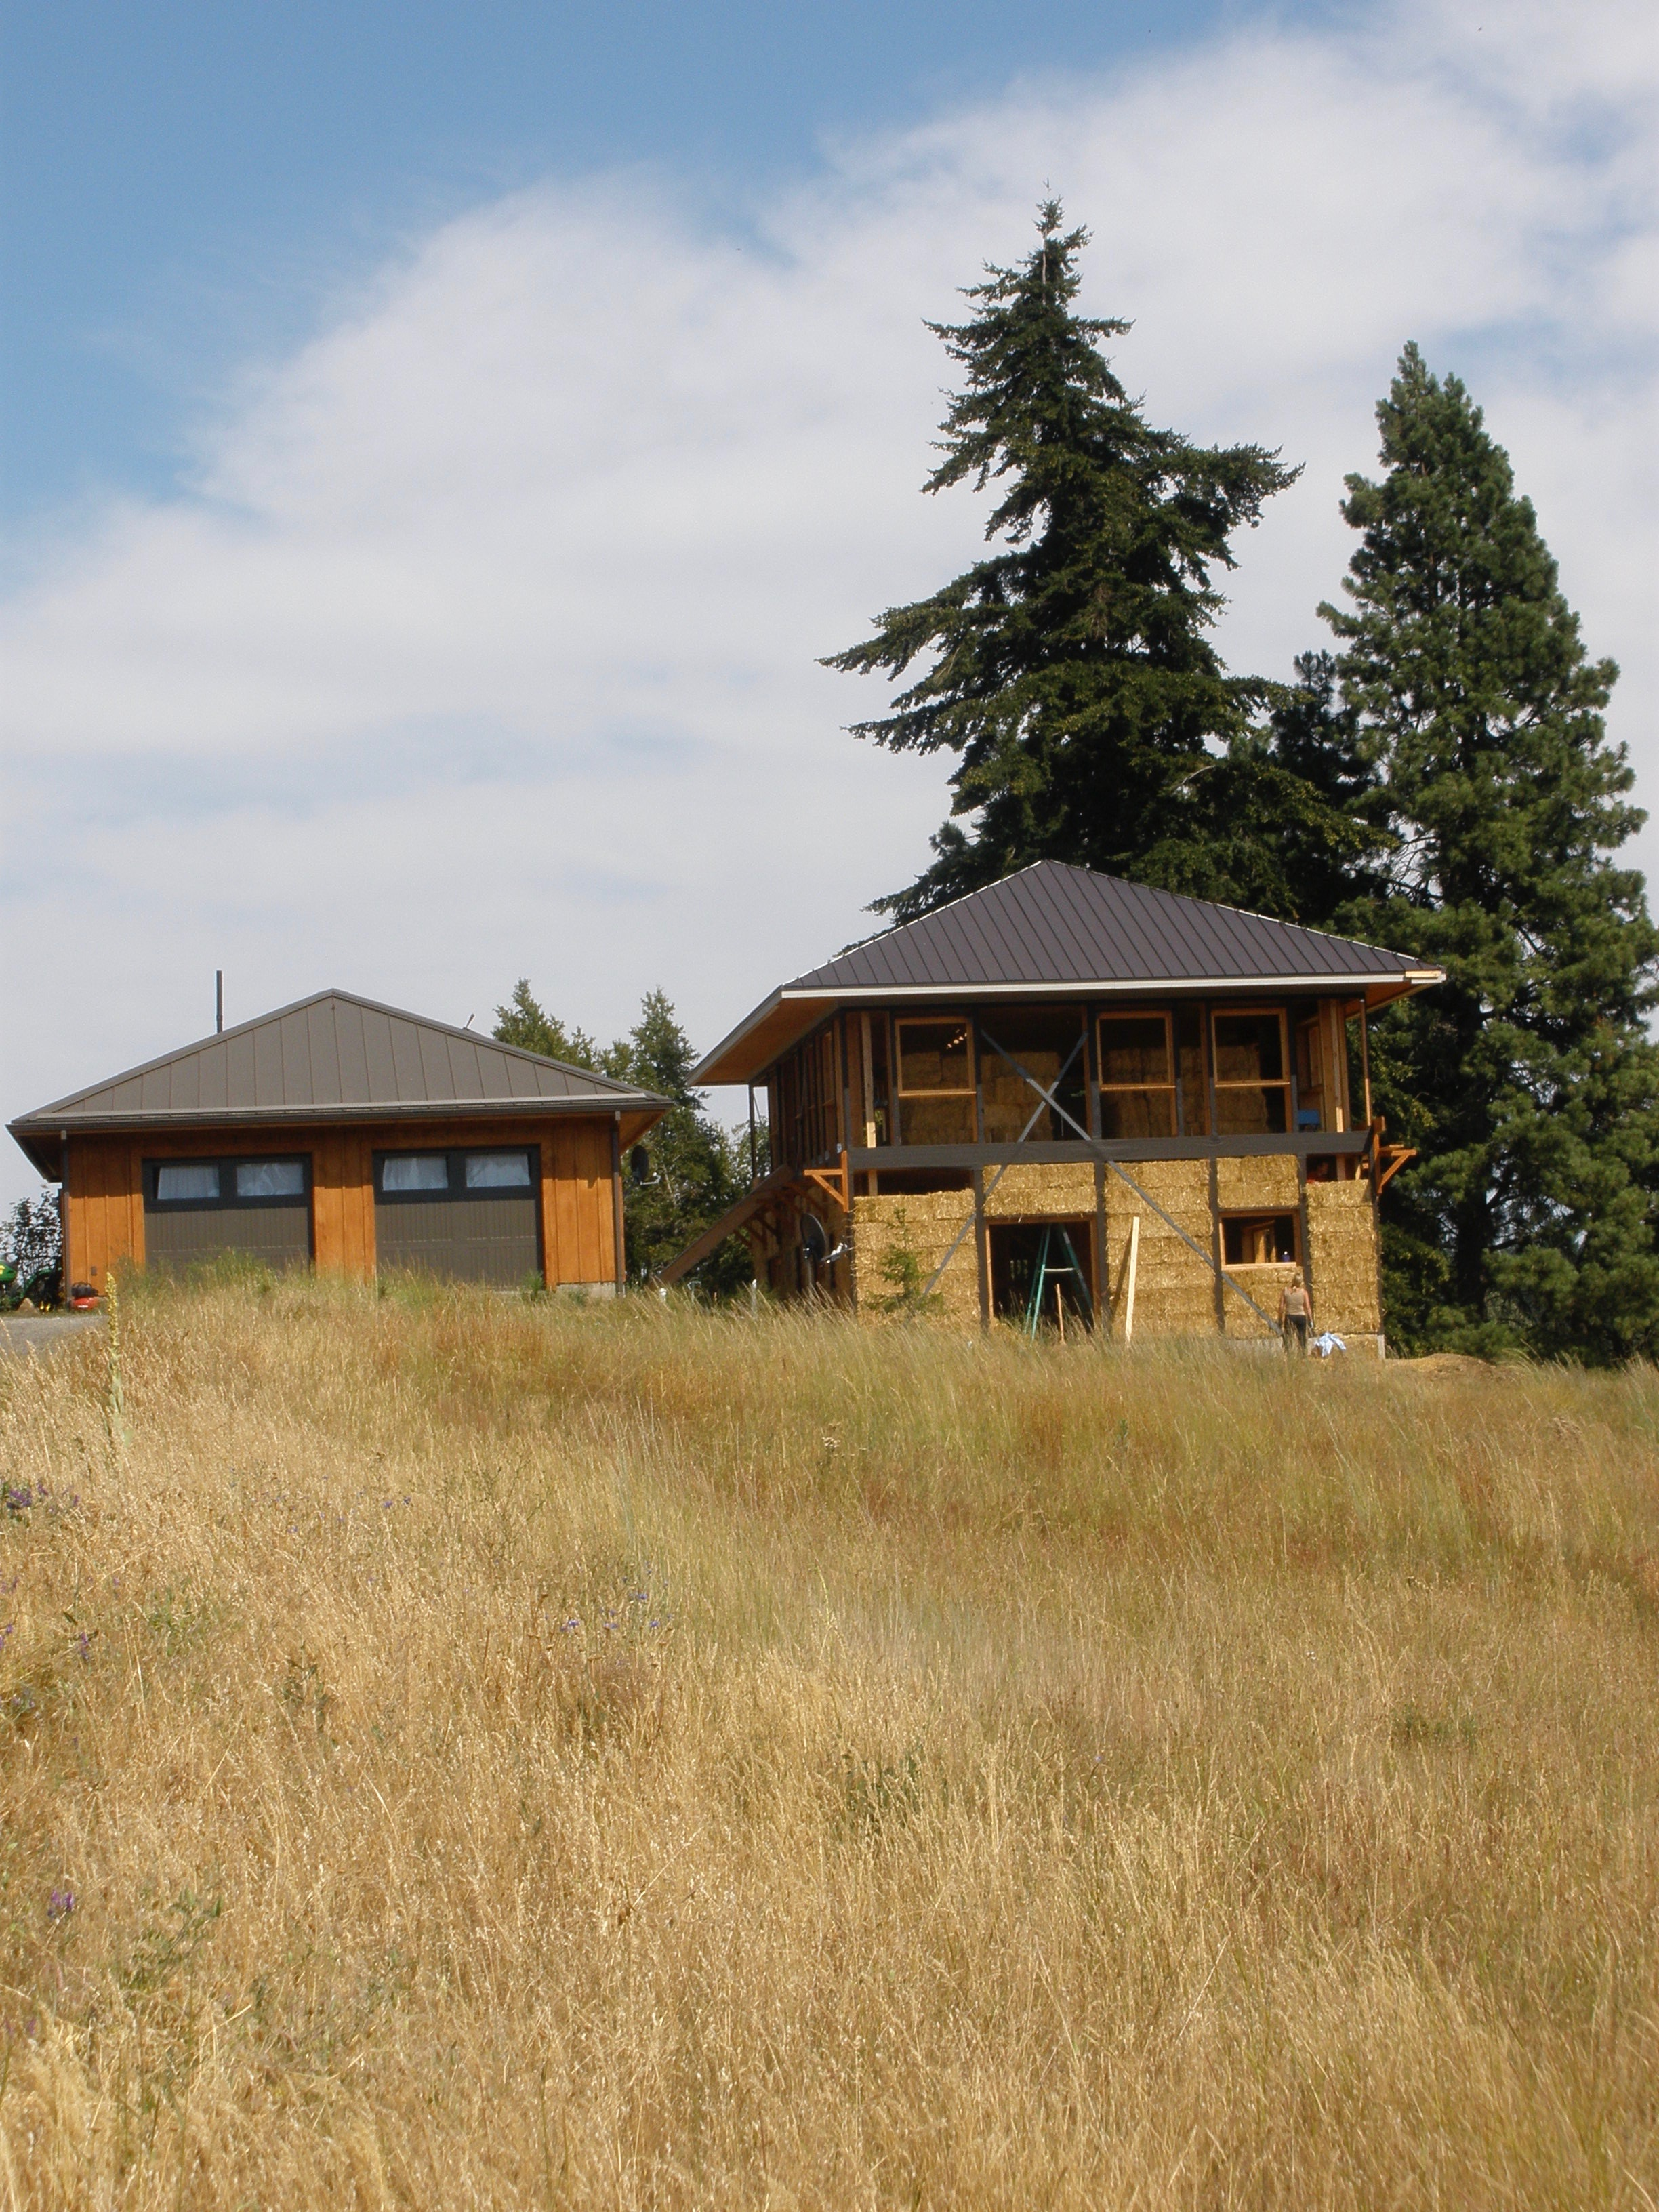 Strawbale home build, Washington state.